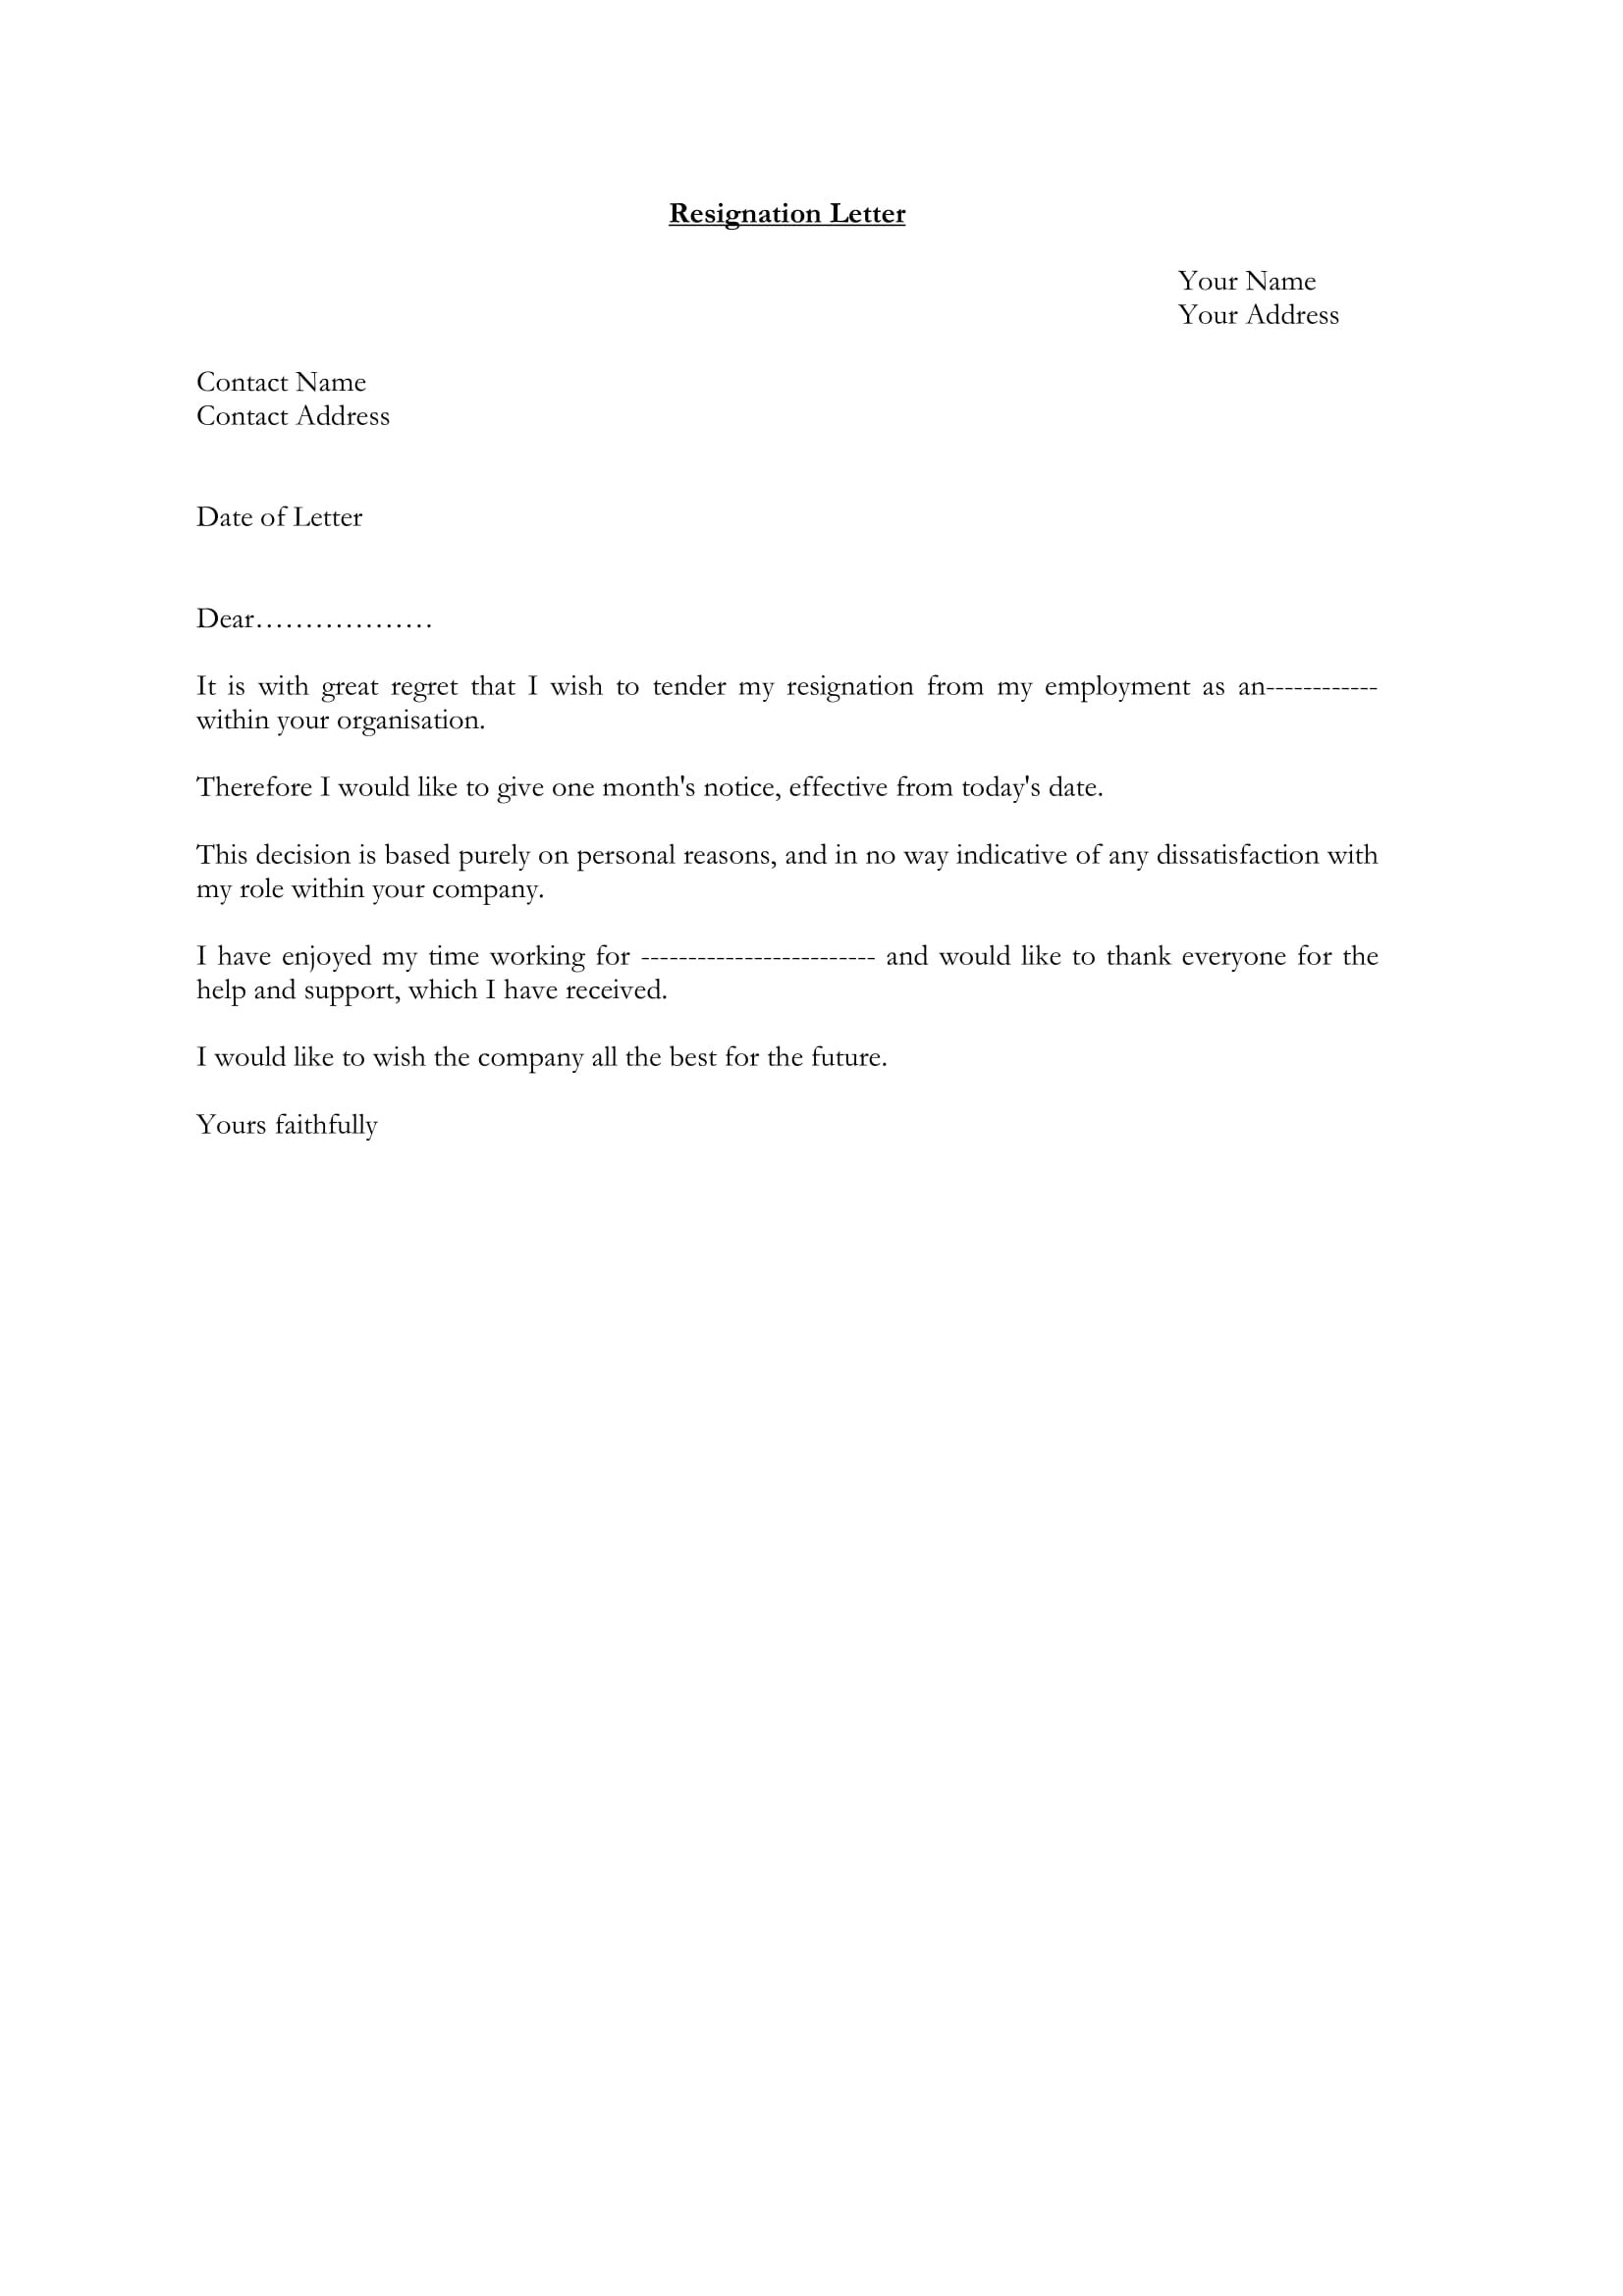 Standard Resignation Letter Examples  Pdf Word  Examples Throughout Standard Resignation Letter Template